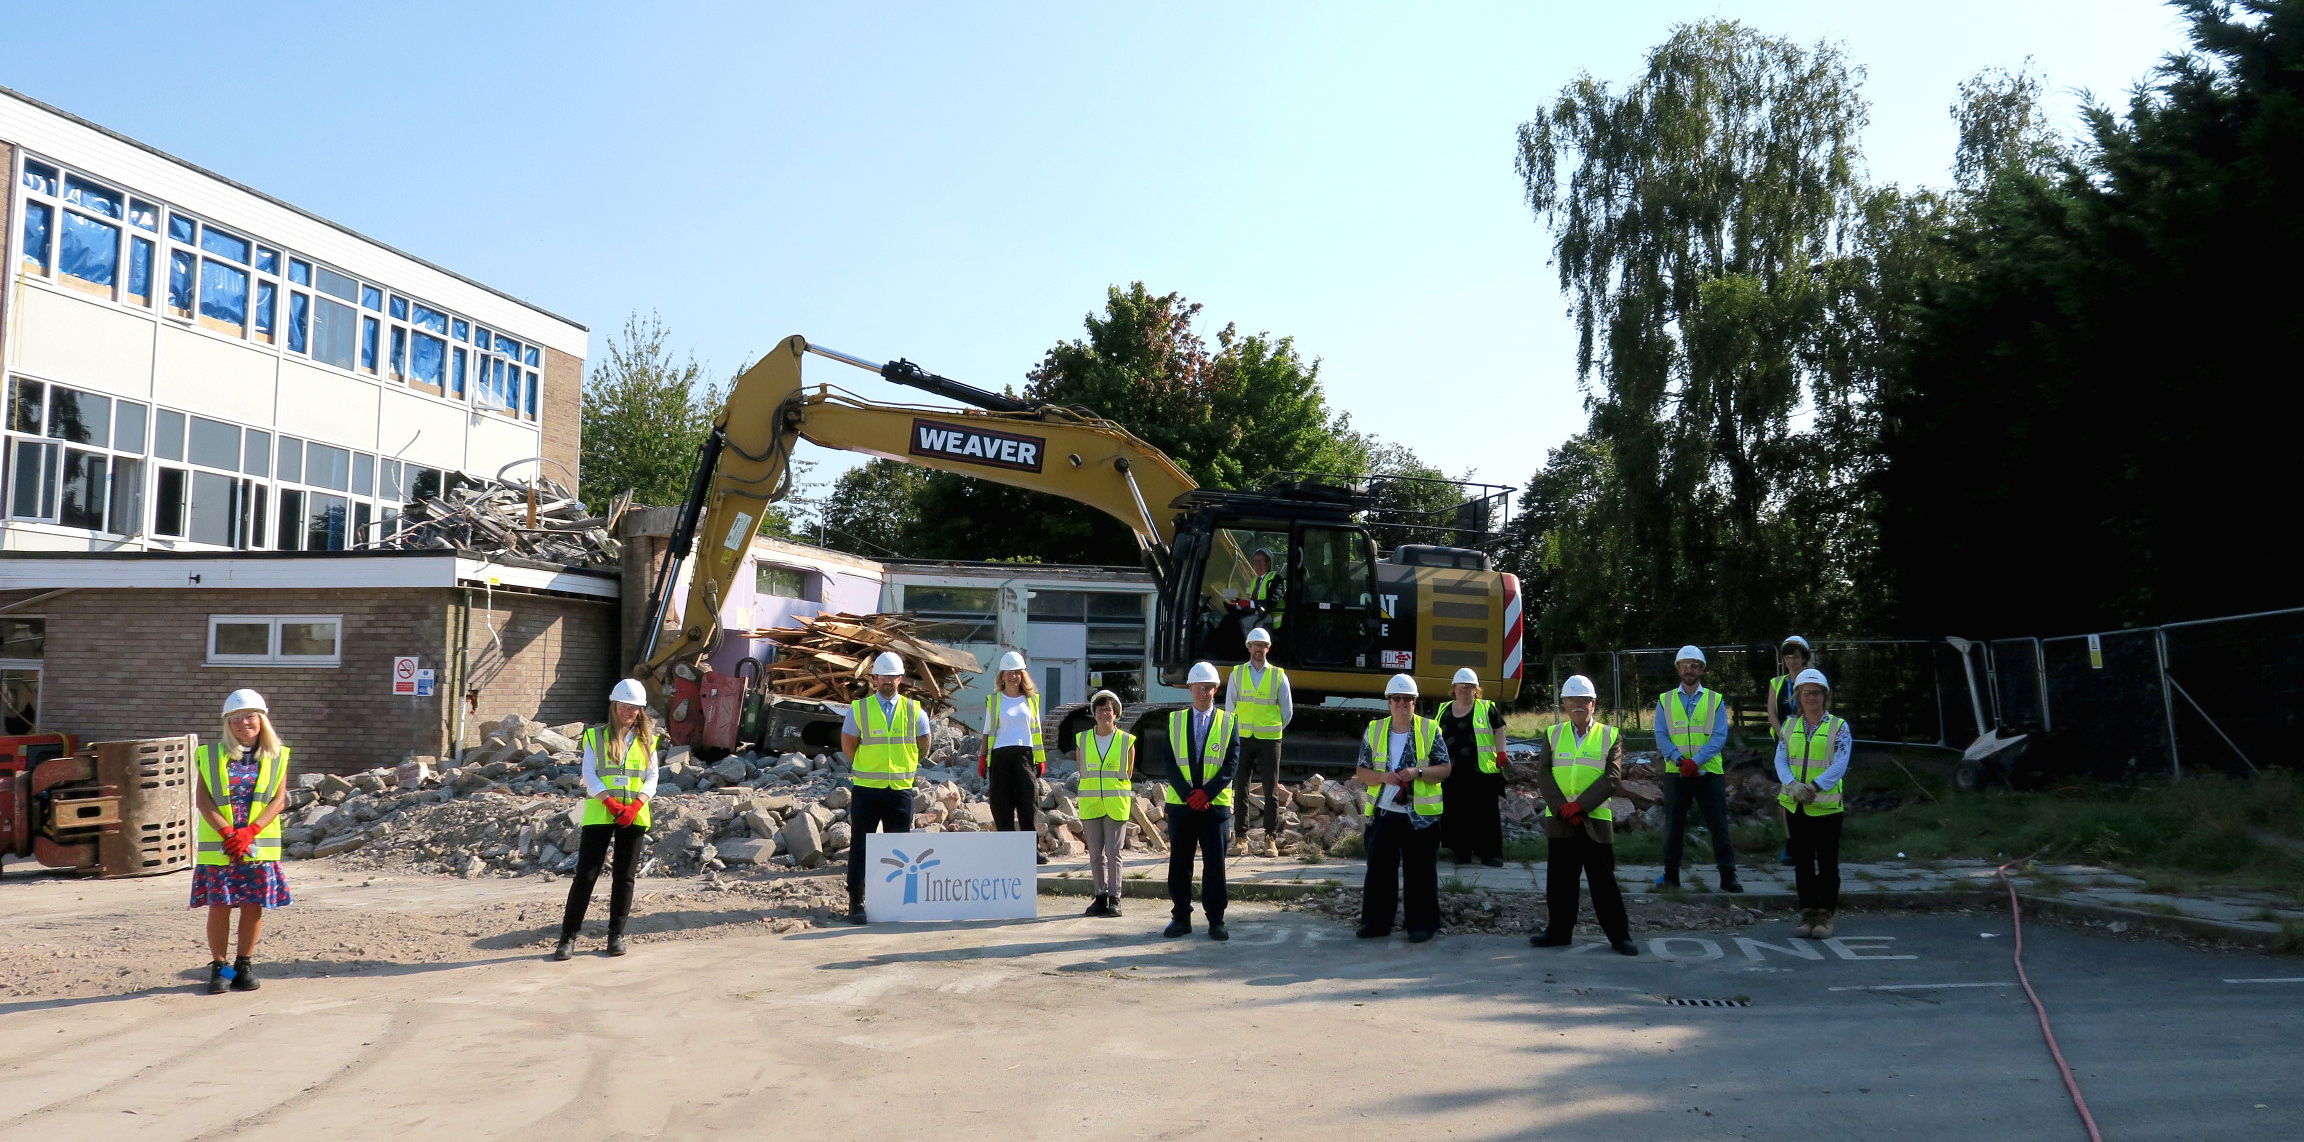 Local councillors joined representatives of Soundwell Academy, Learn@ Multi Academy Trust, South Gloucestershire Council, B&NES, Interserve and St Stephen's Church at the site of the new school